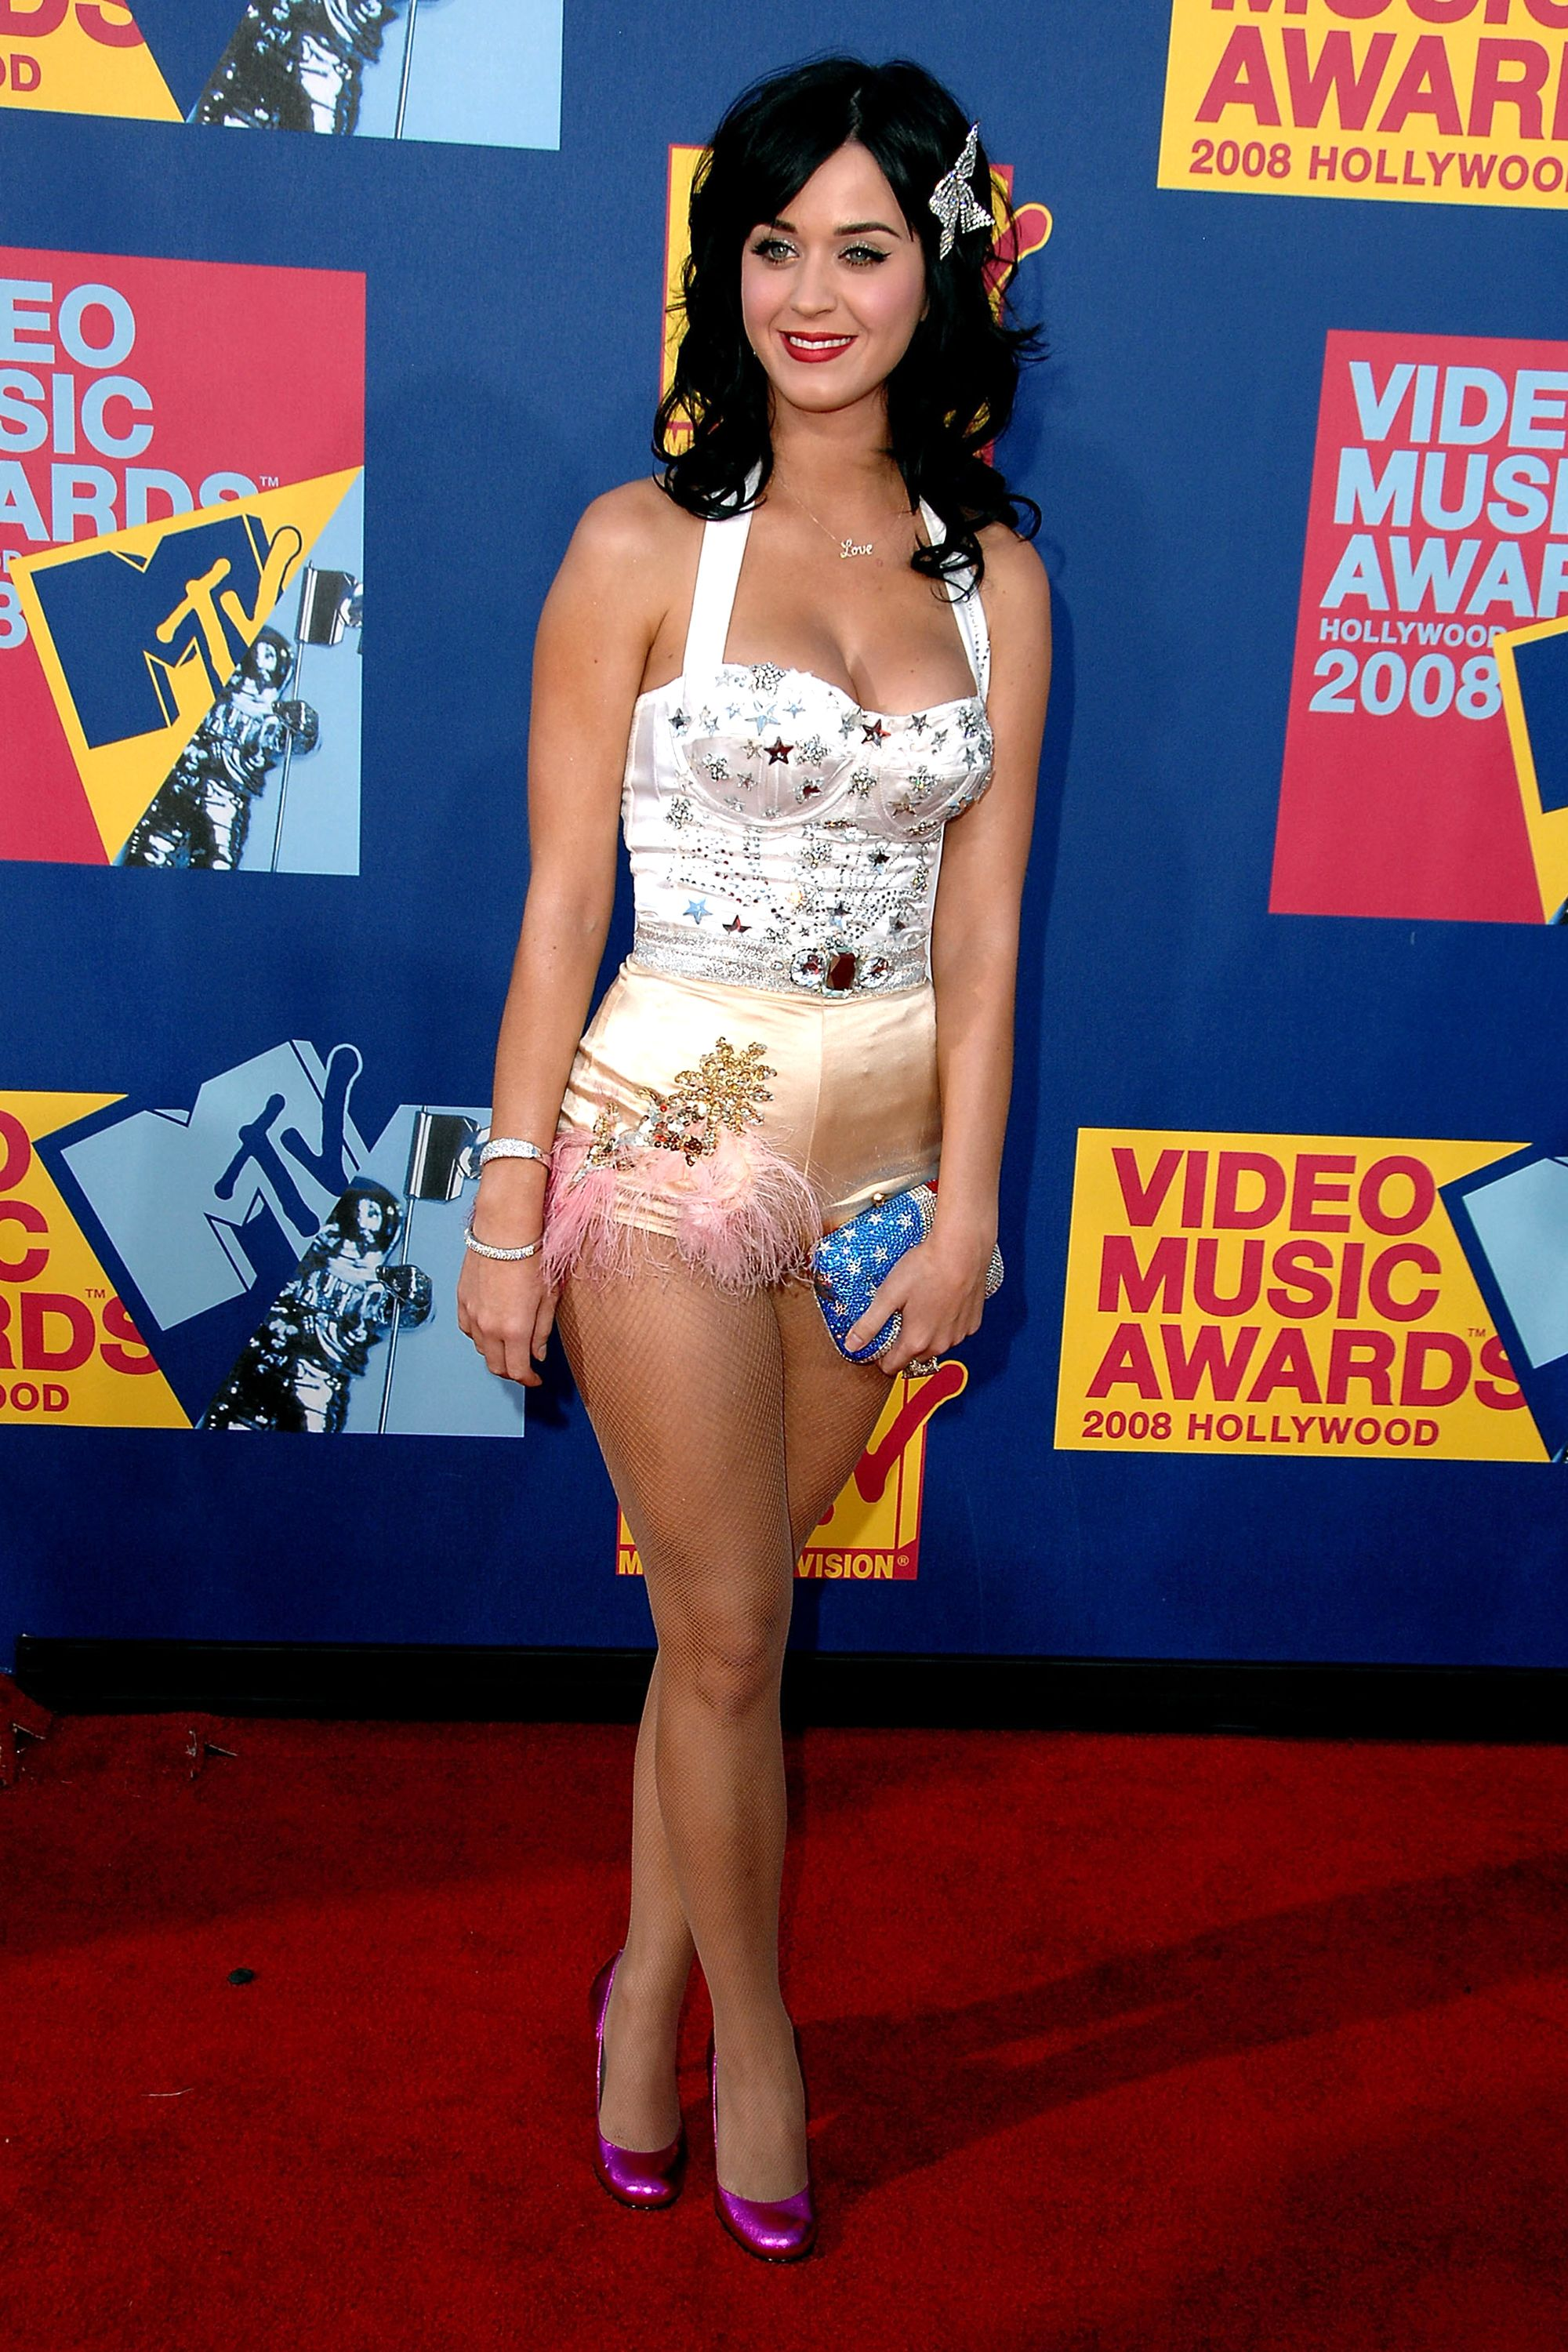 <p>Before she was a high fashion darling, she made her mark in playful, vintage inspired outfits like this ensemble from the 2008 MTV Video Music Awards. </p>